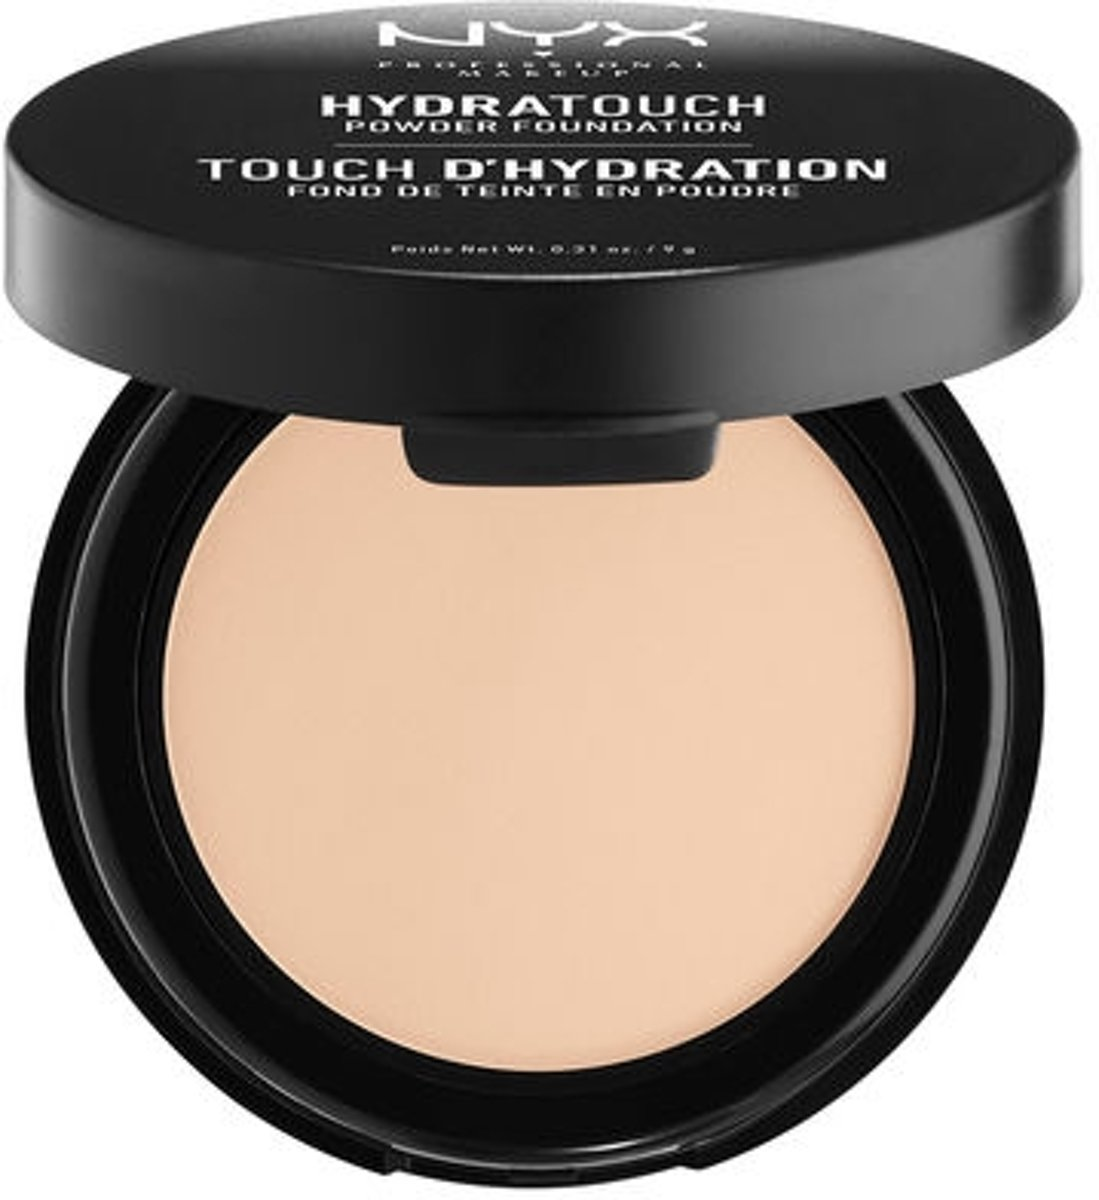 NYX Hydra Touch Powder Foundation Ivory